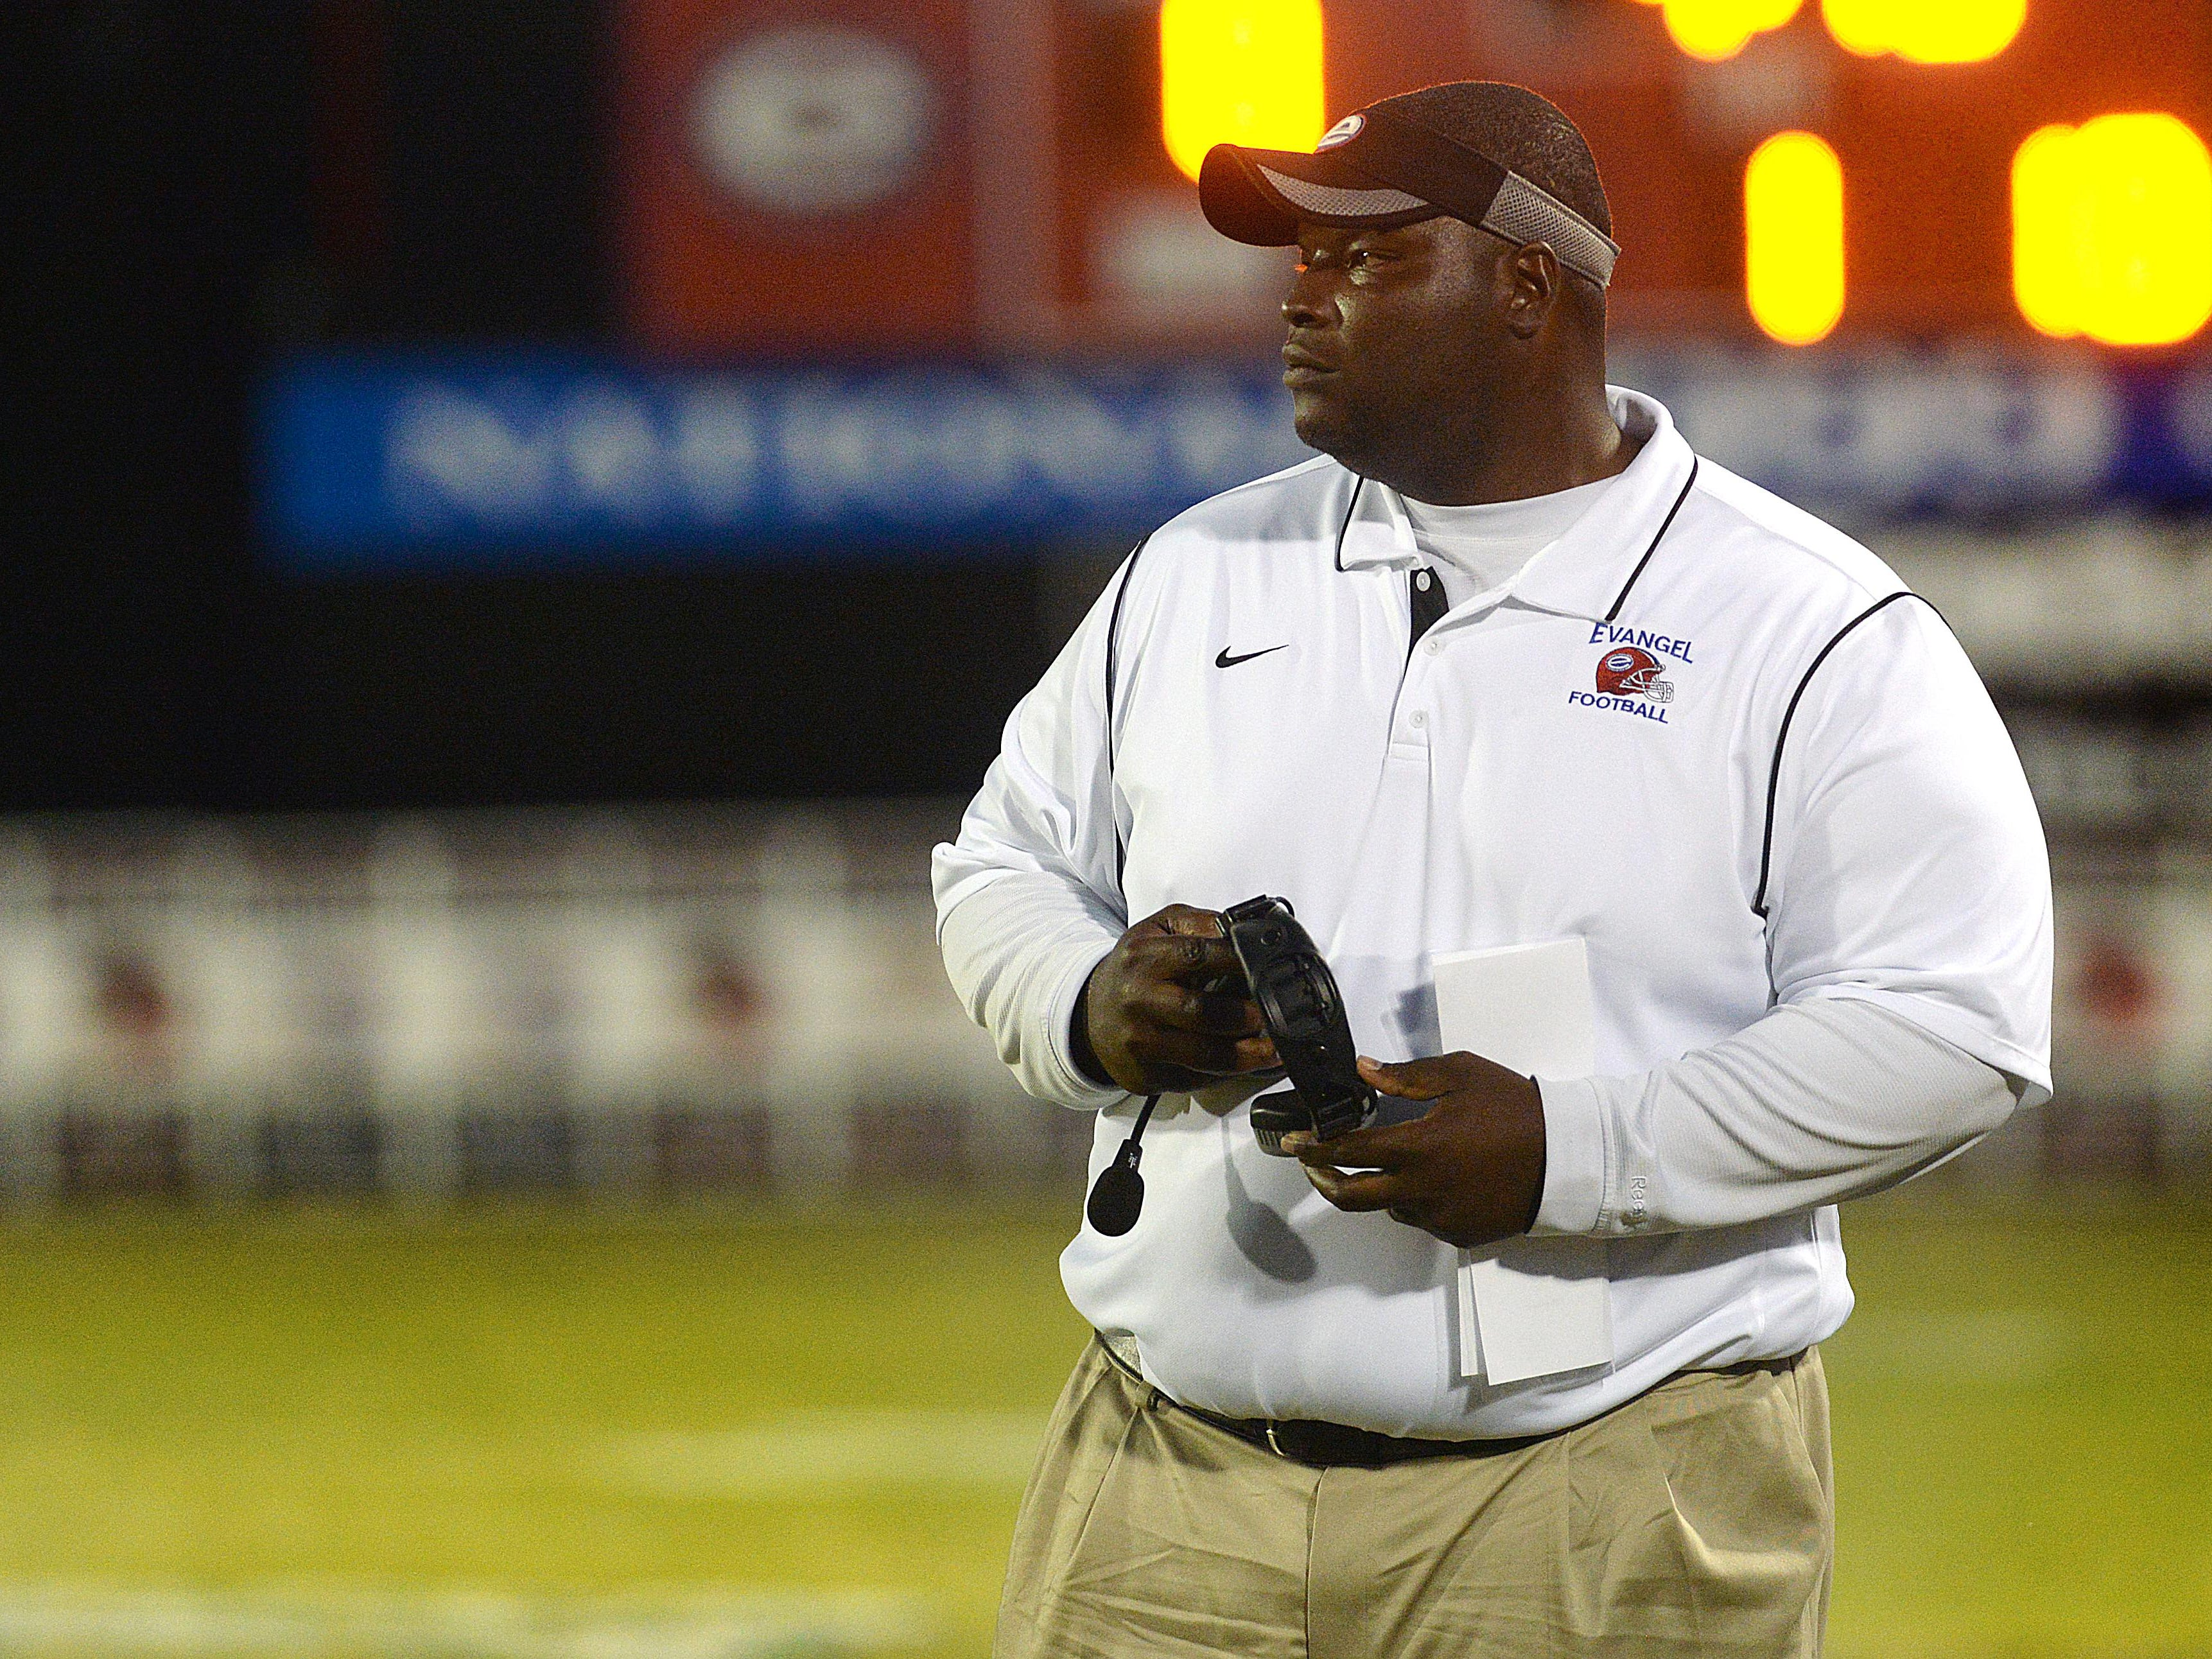 File photoEvangel head coach Byron Dawson saw his team shut out Idabel (Oklahoma) on Friday. Evangel head coach Byron Dawson looks on from the sideline of his game against North Webster October 17, 2014.